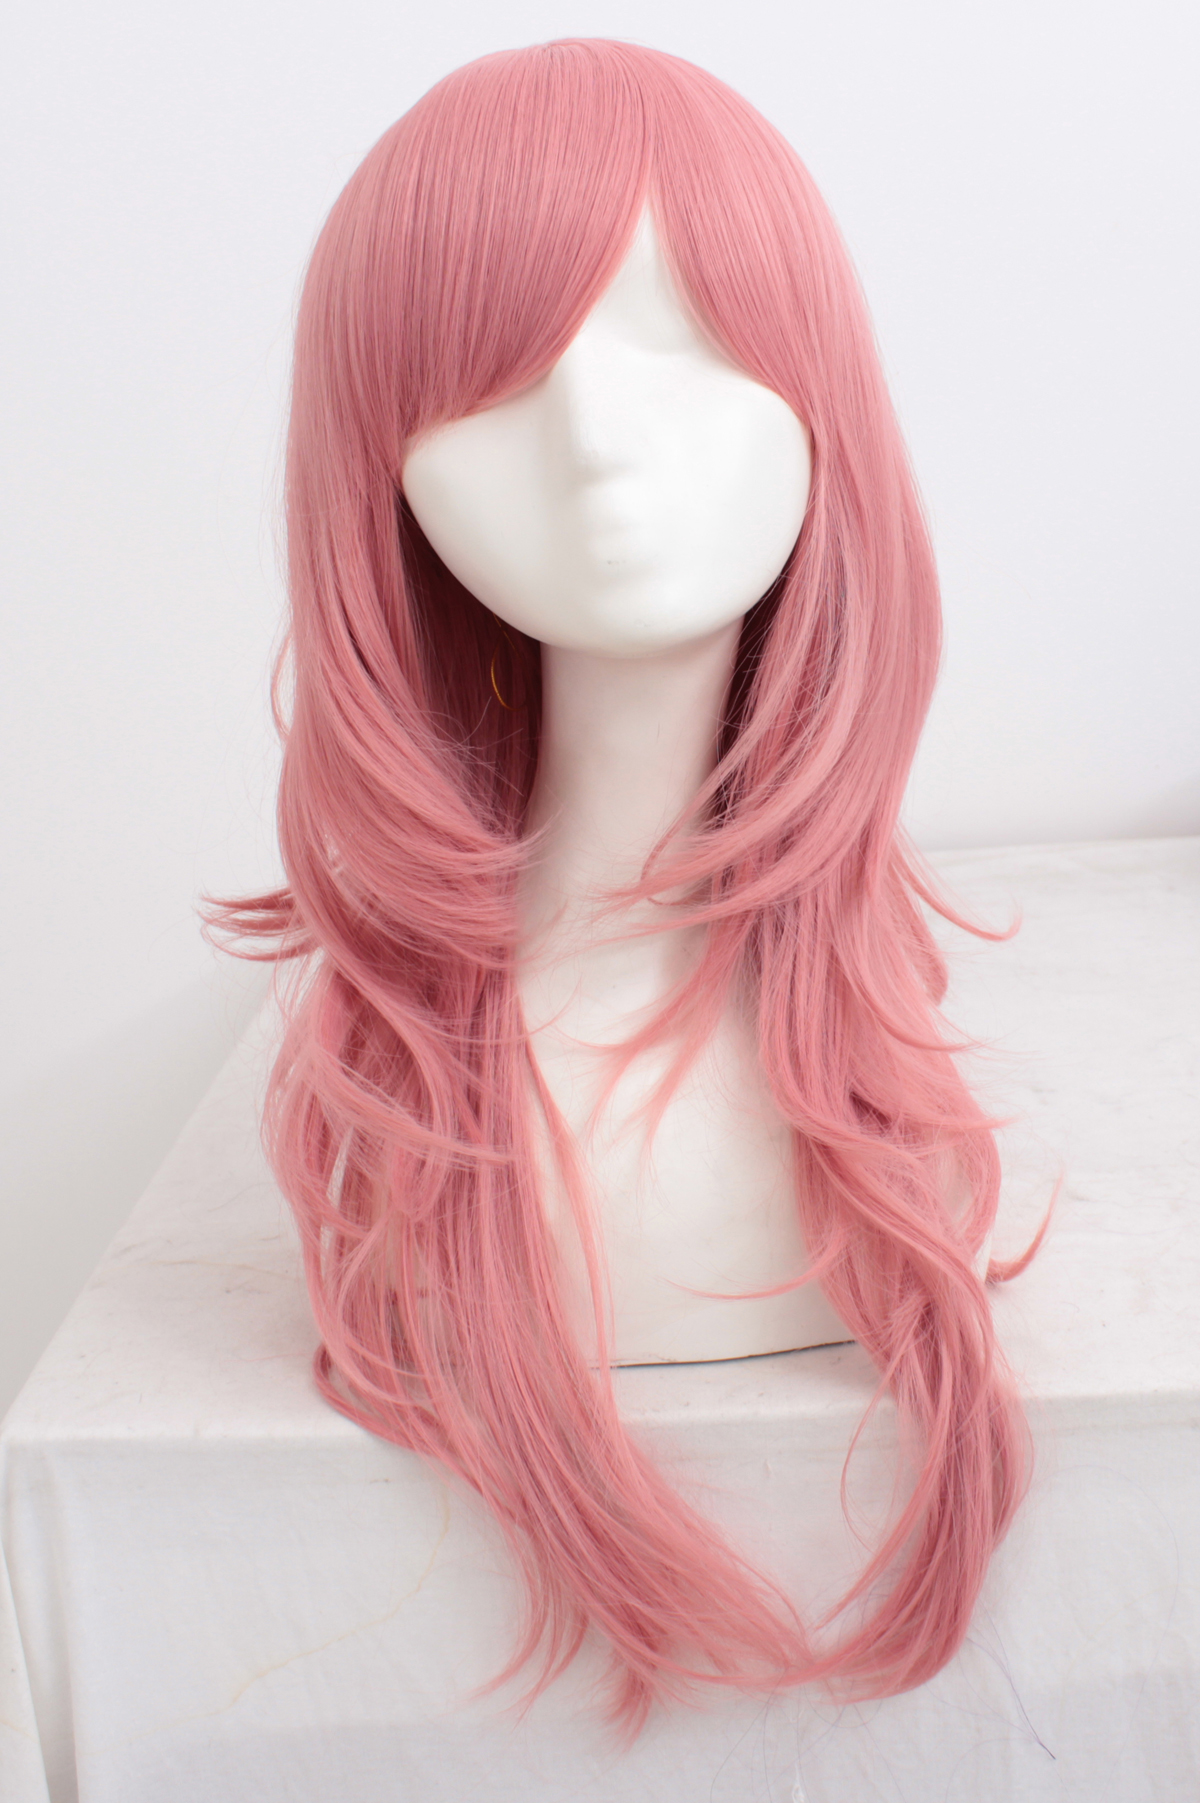 70cm Pink Wavy Cosplay Wigs Costumes Wigs For Ladies With Bangs